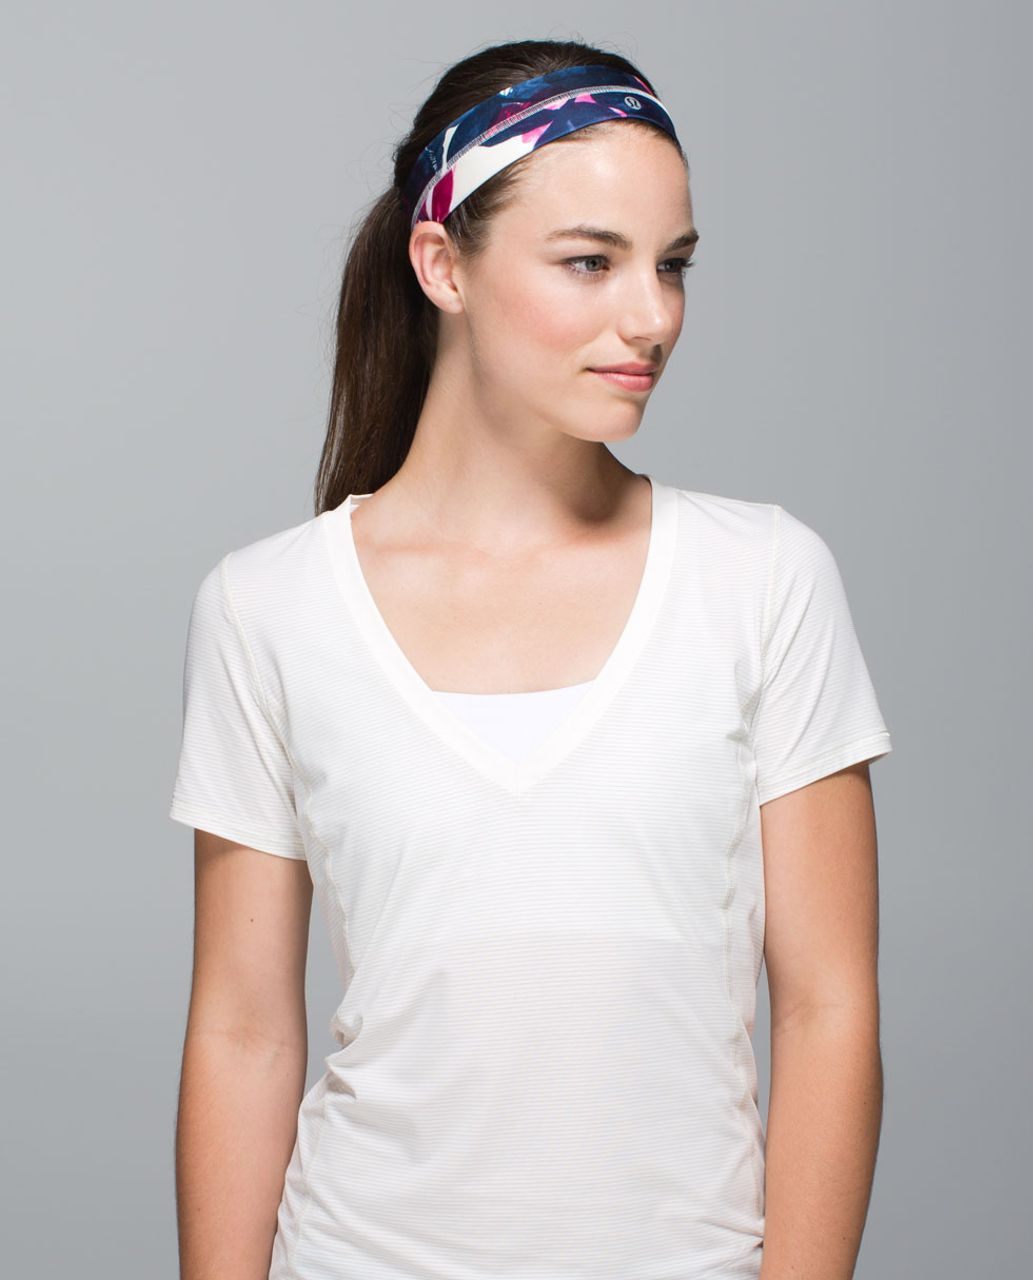 Lululemon Fly Away Tamer Headband - Inky Floral Ghost Inkwell Bumble Berry